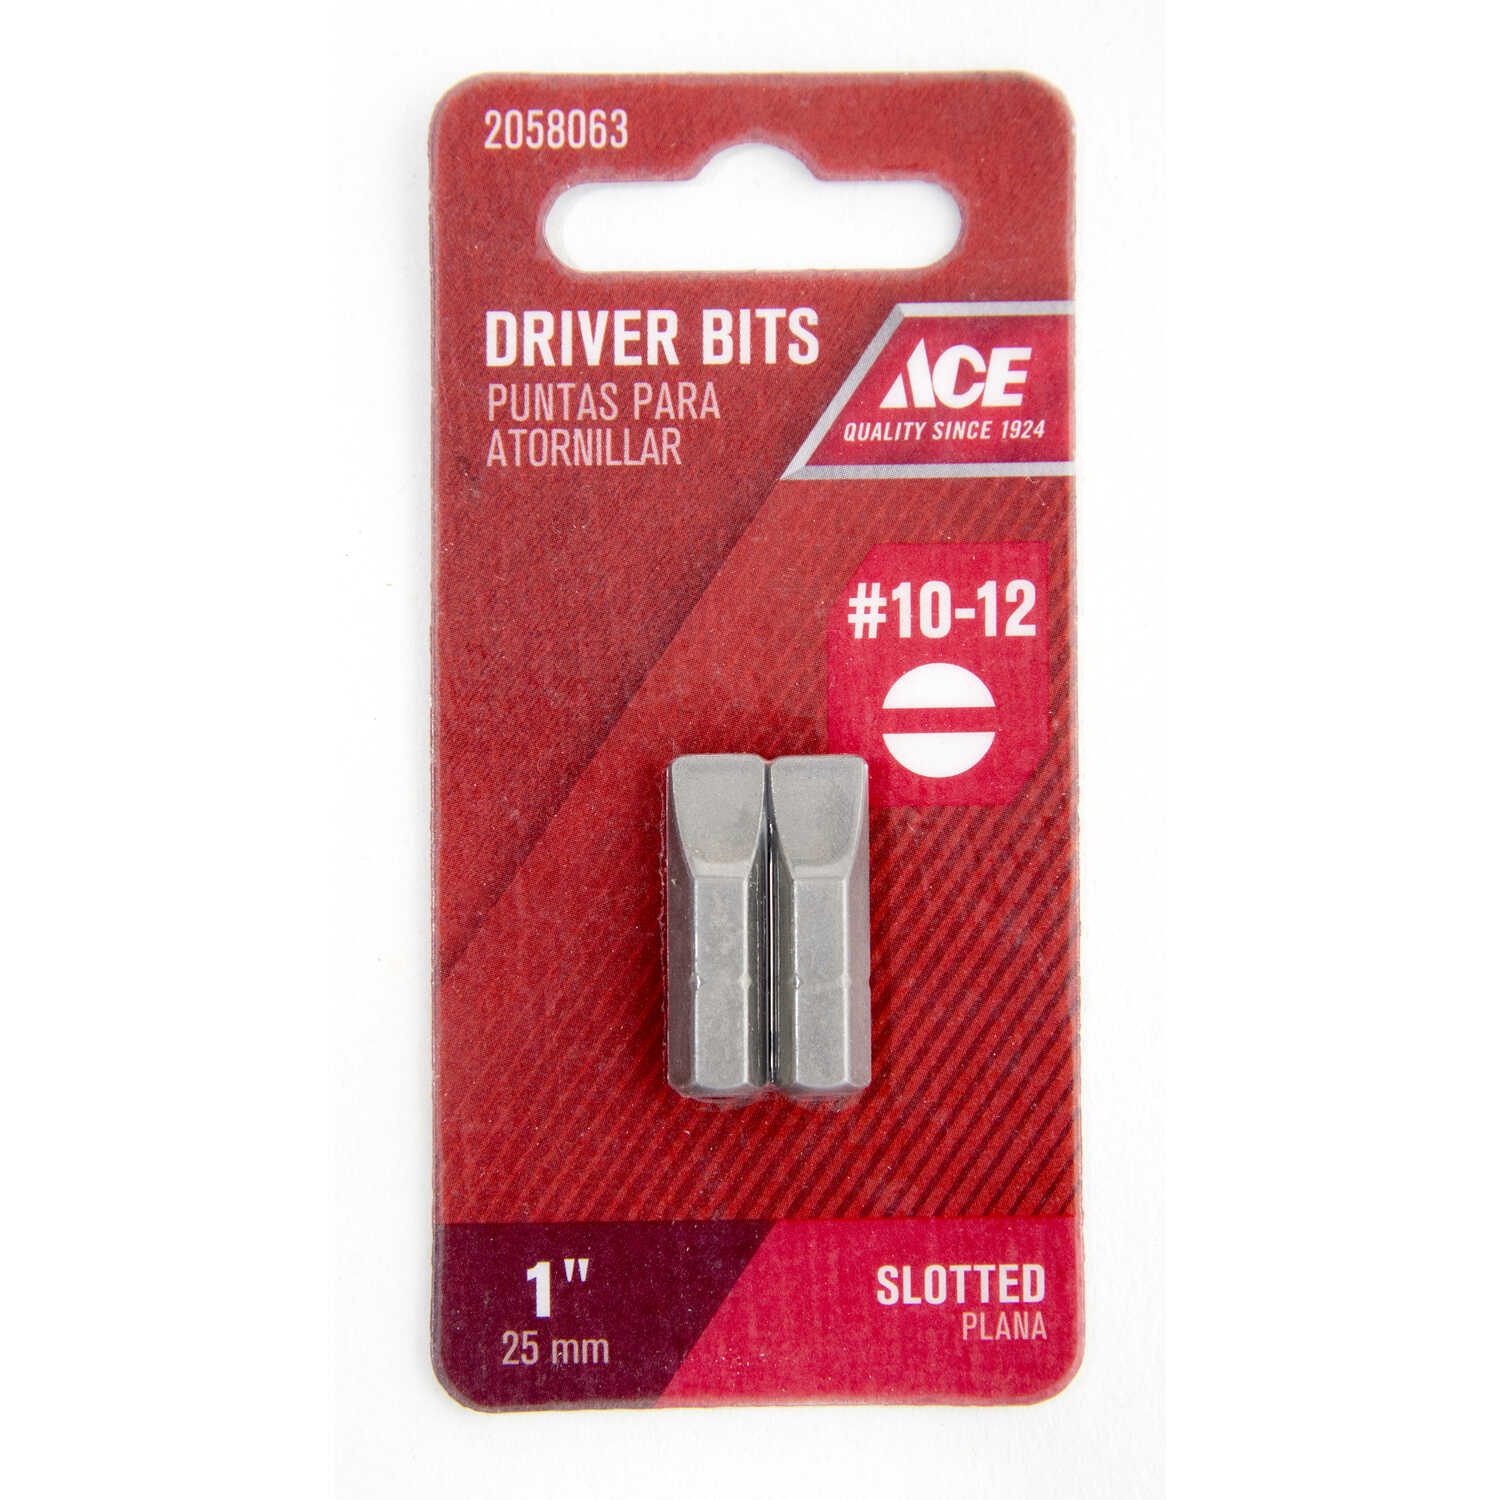 Ace  Slotted  #10-12   x 1 in. L Insert Bit  S2 Tool Steel  1/4 in. Hex Shank  2 pc.